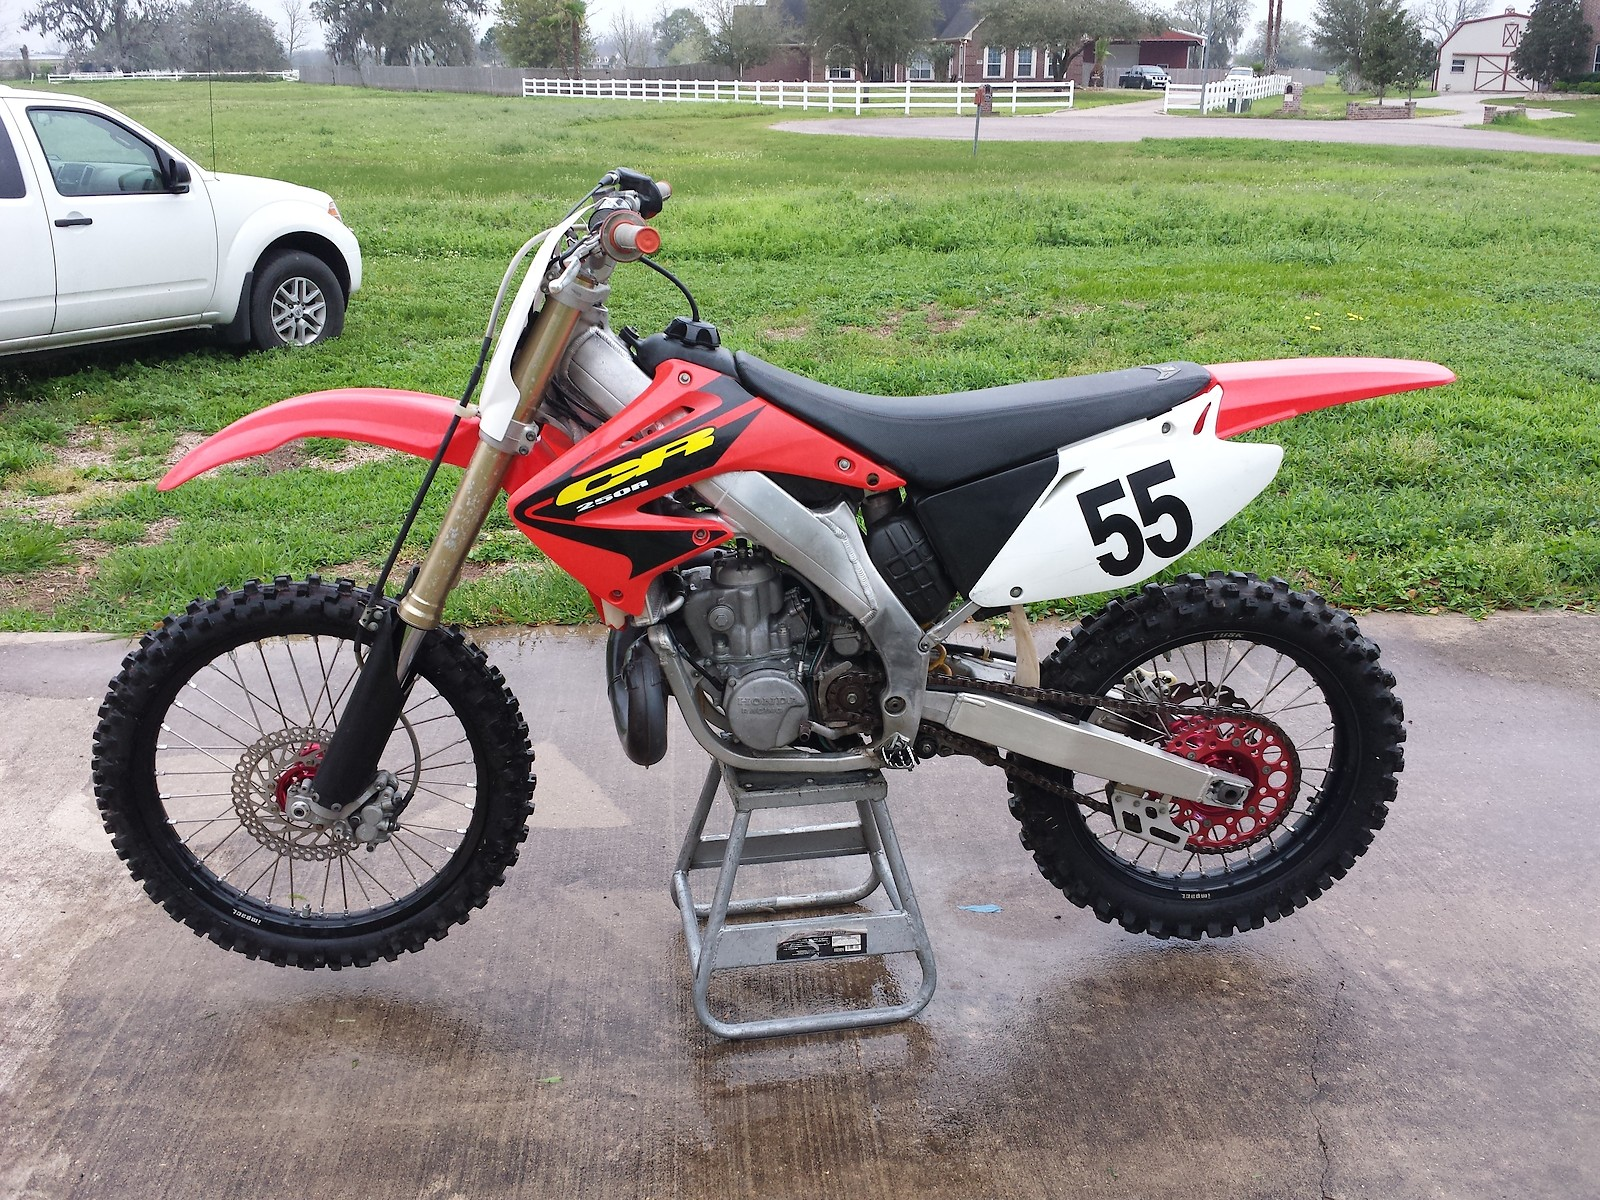 hight resolution of package deal 2003 honda cr250 with 2001 cr250 engine 2001 roller 2003 engine parts 3500